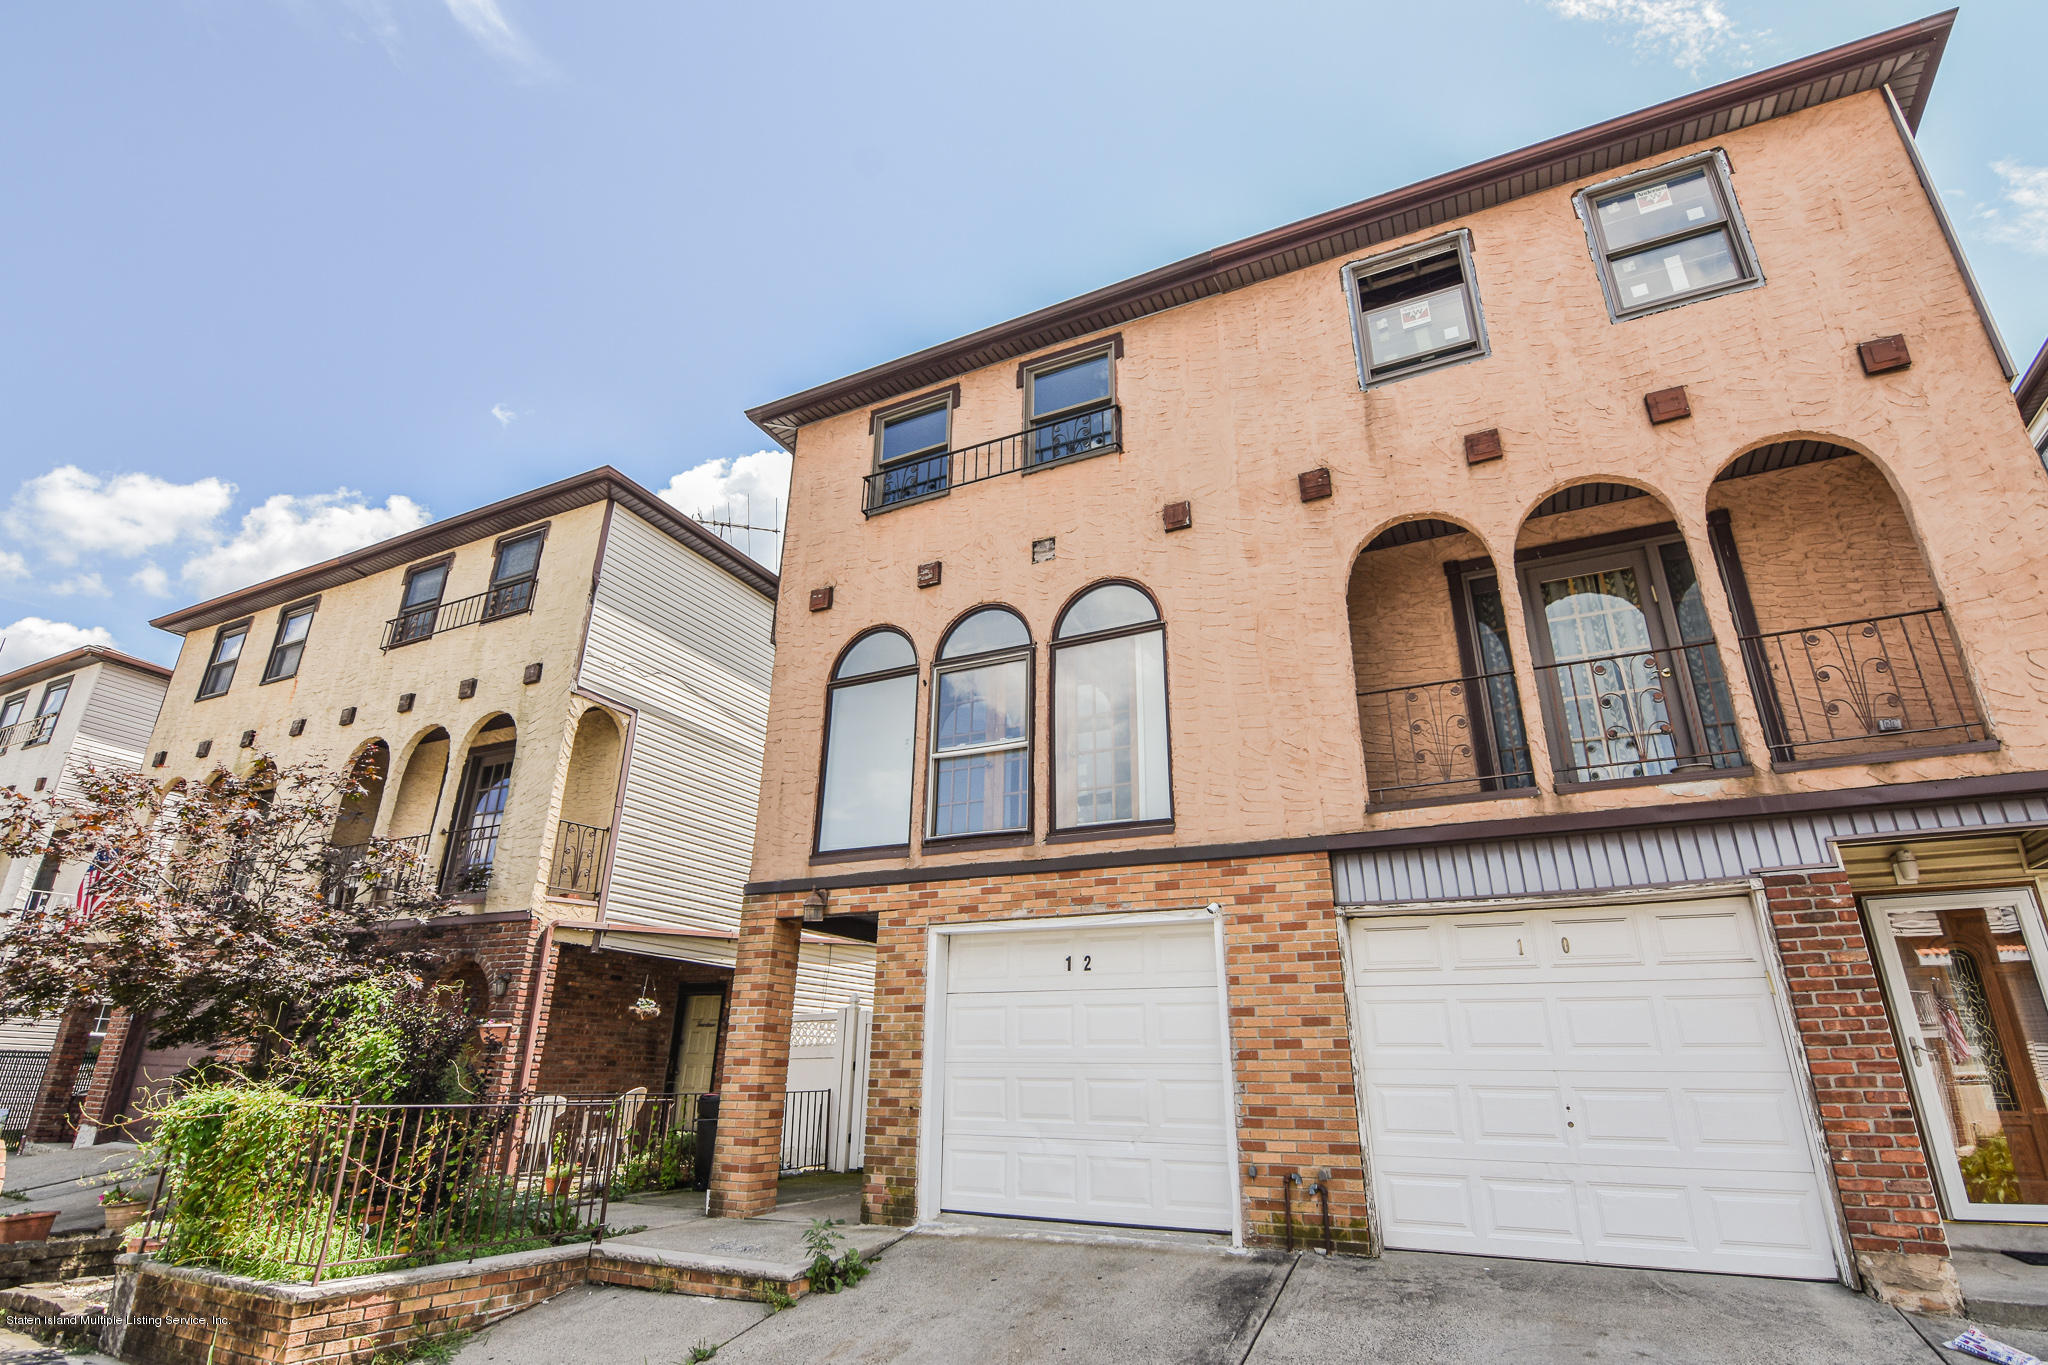 Single Family - Semi-Attached 12 Ebey Lane  Staten Island, NY 10312, MLS-1131132-2